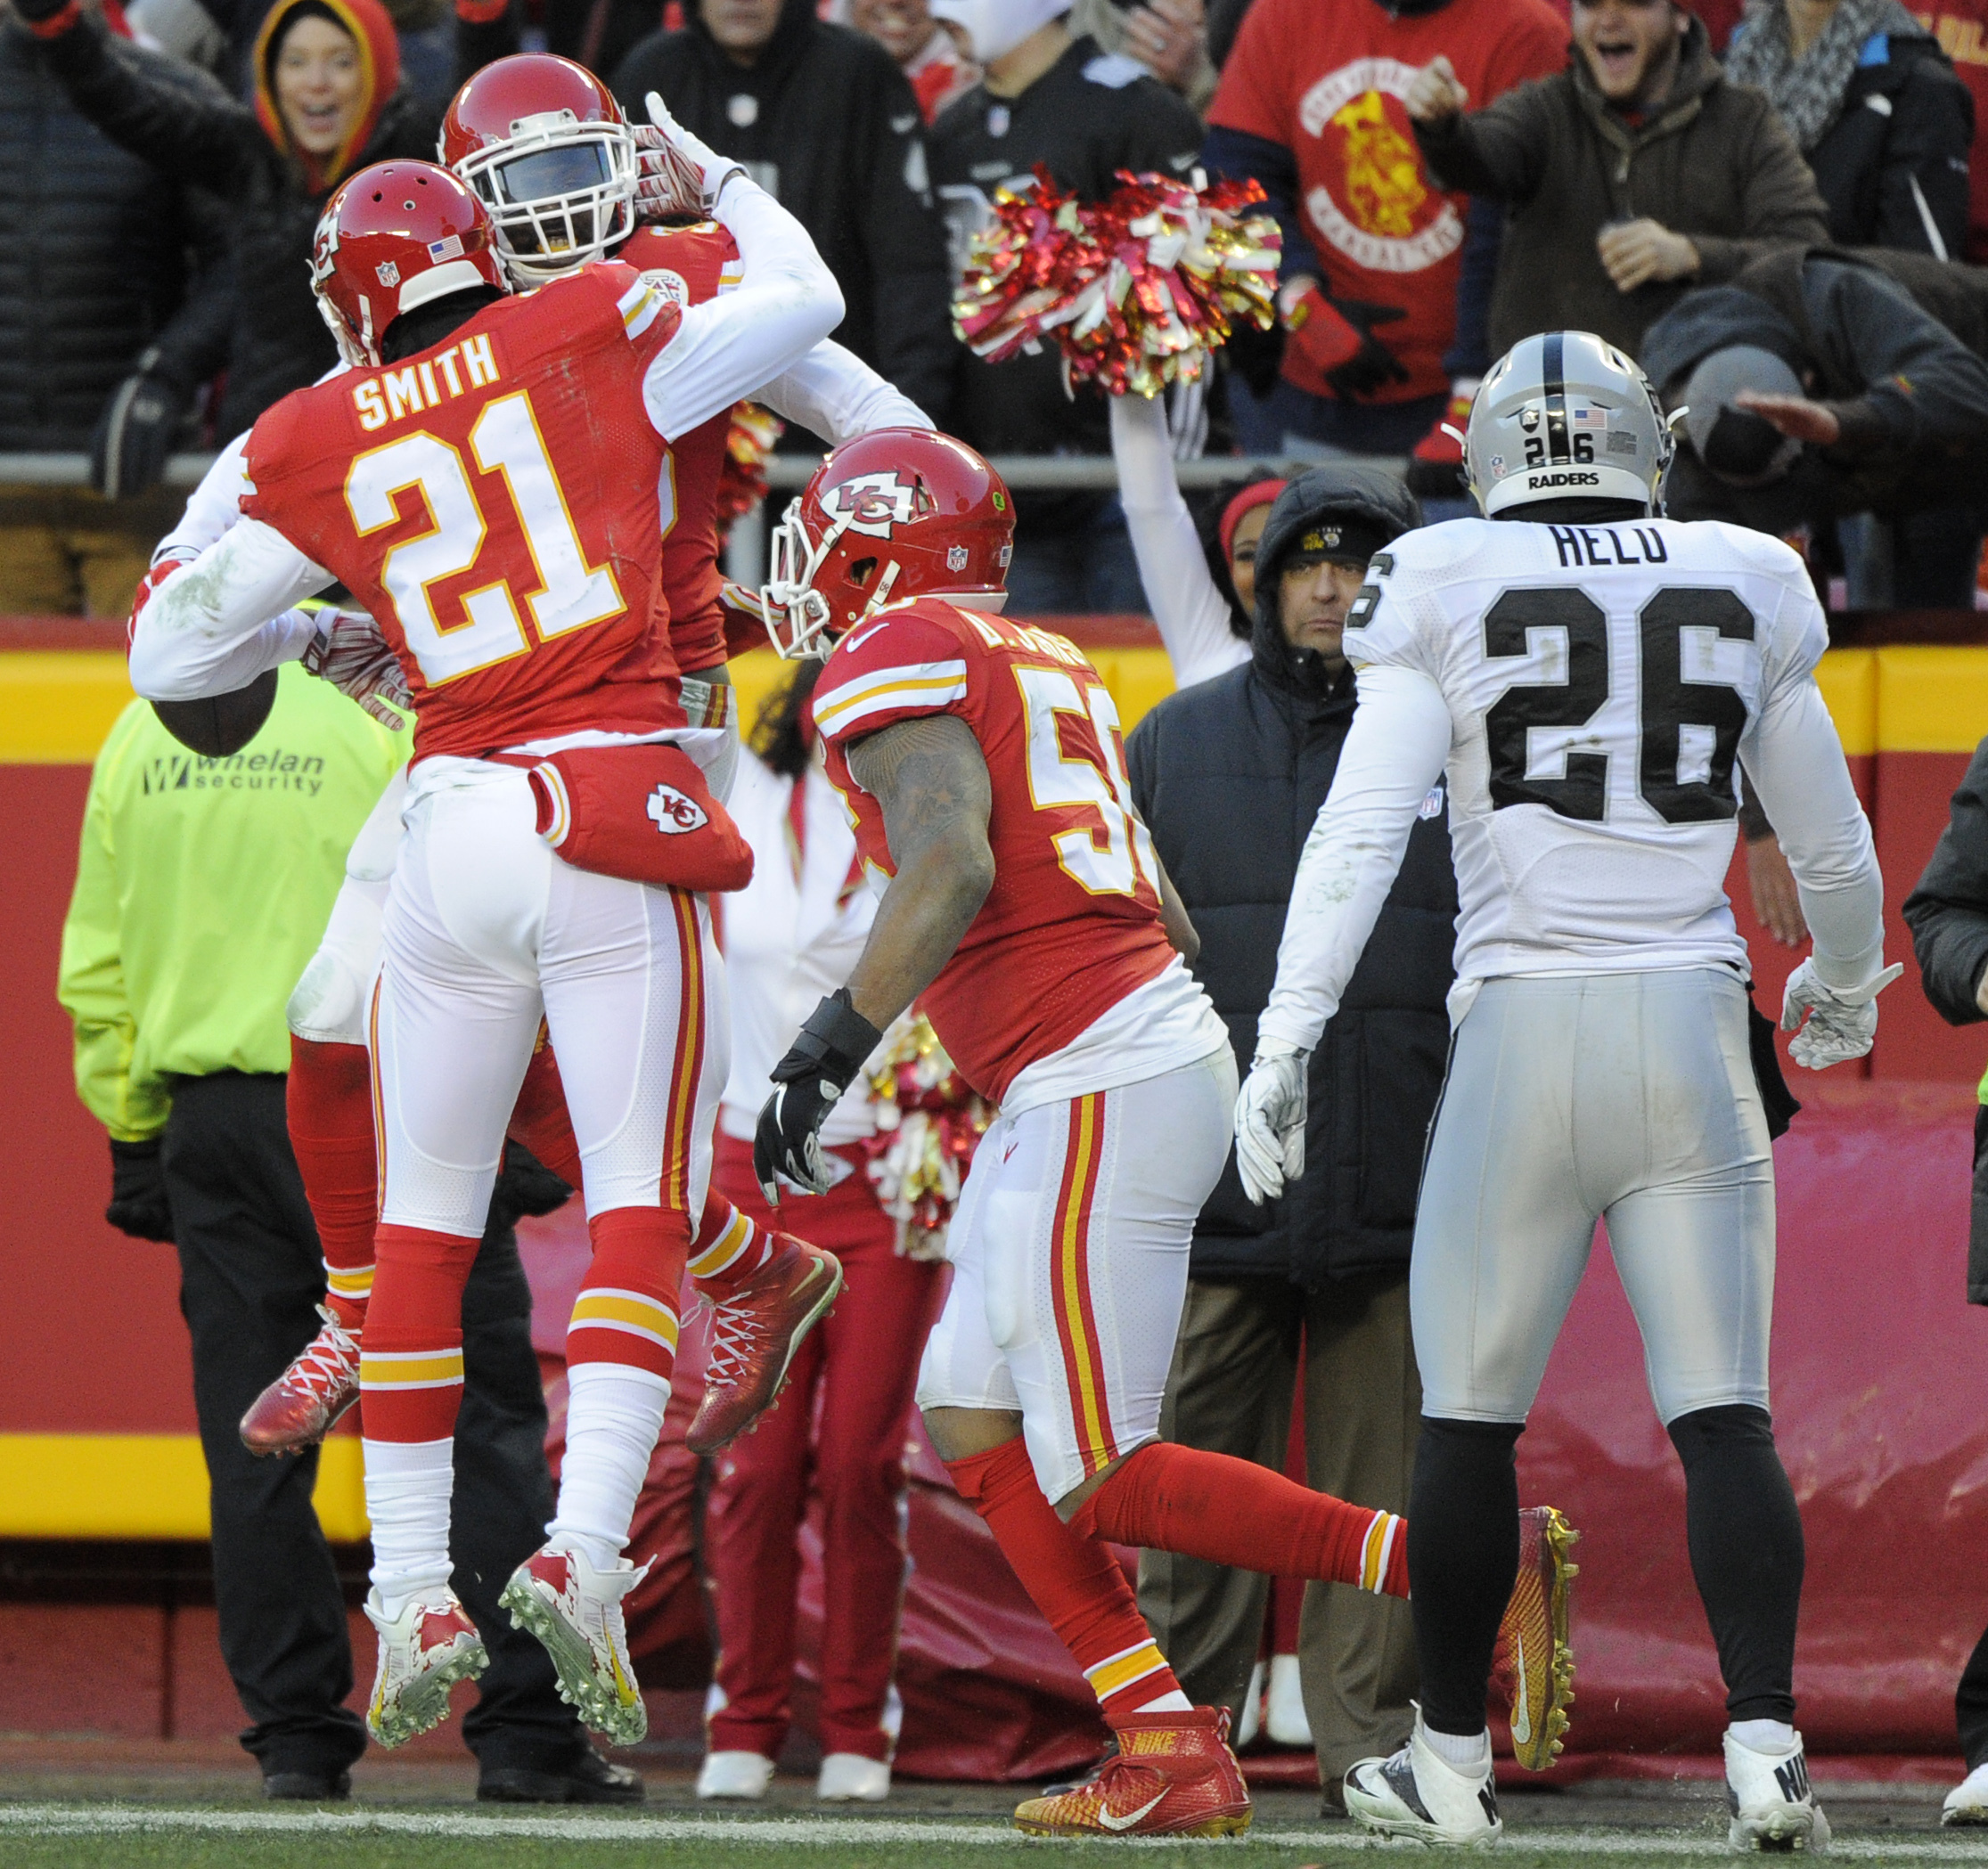 Kansas City Chiefs linebacker Derrick Johnson, right, and cornerback Sean Smith (21) celebrate with safety Ron Parker (38) after an interception by Parker during the first half of an NFL football game against the Oakland Raiders in Kansas City, Mo., Sunda